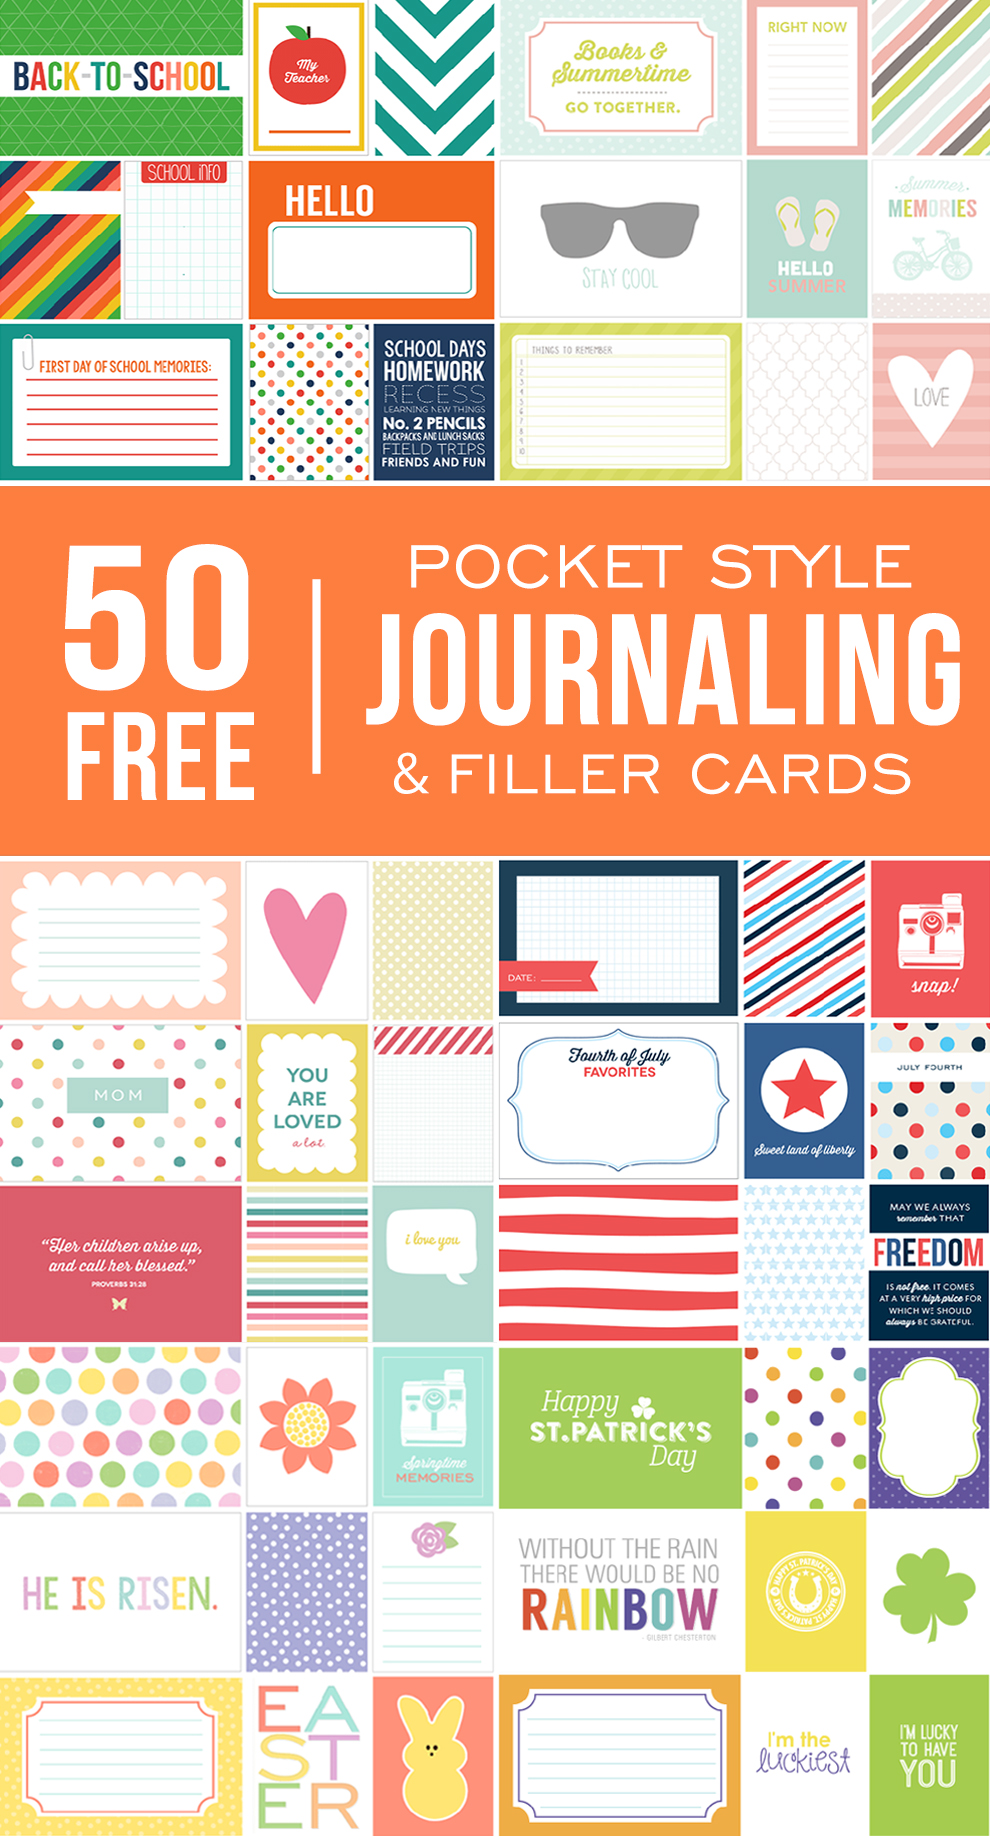 It's just a graphic of Free Printable Journaling Cards intended for vacation scrapbook